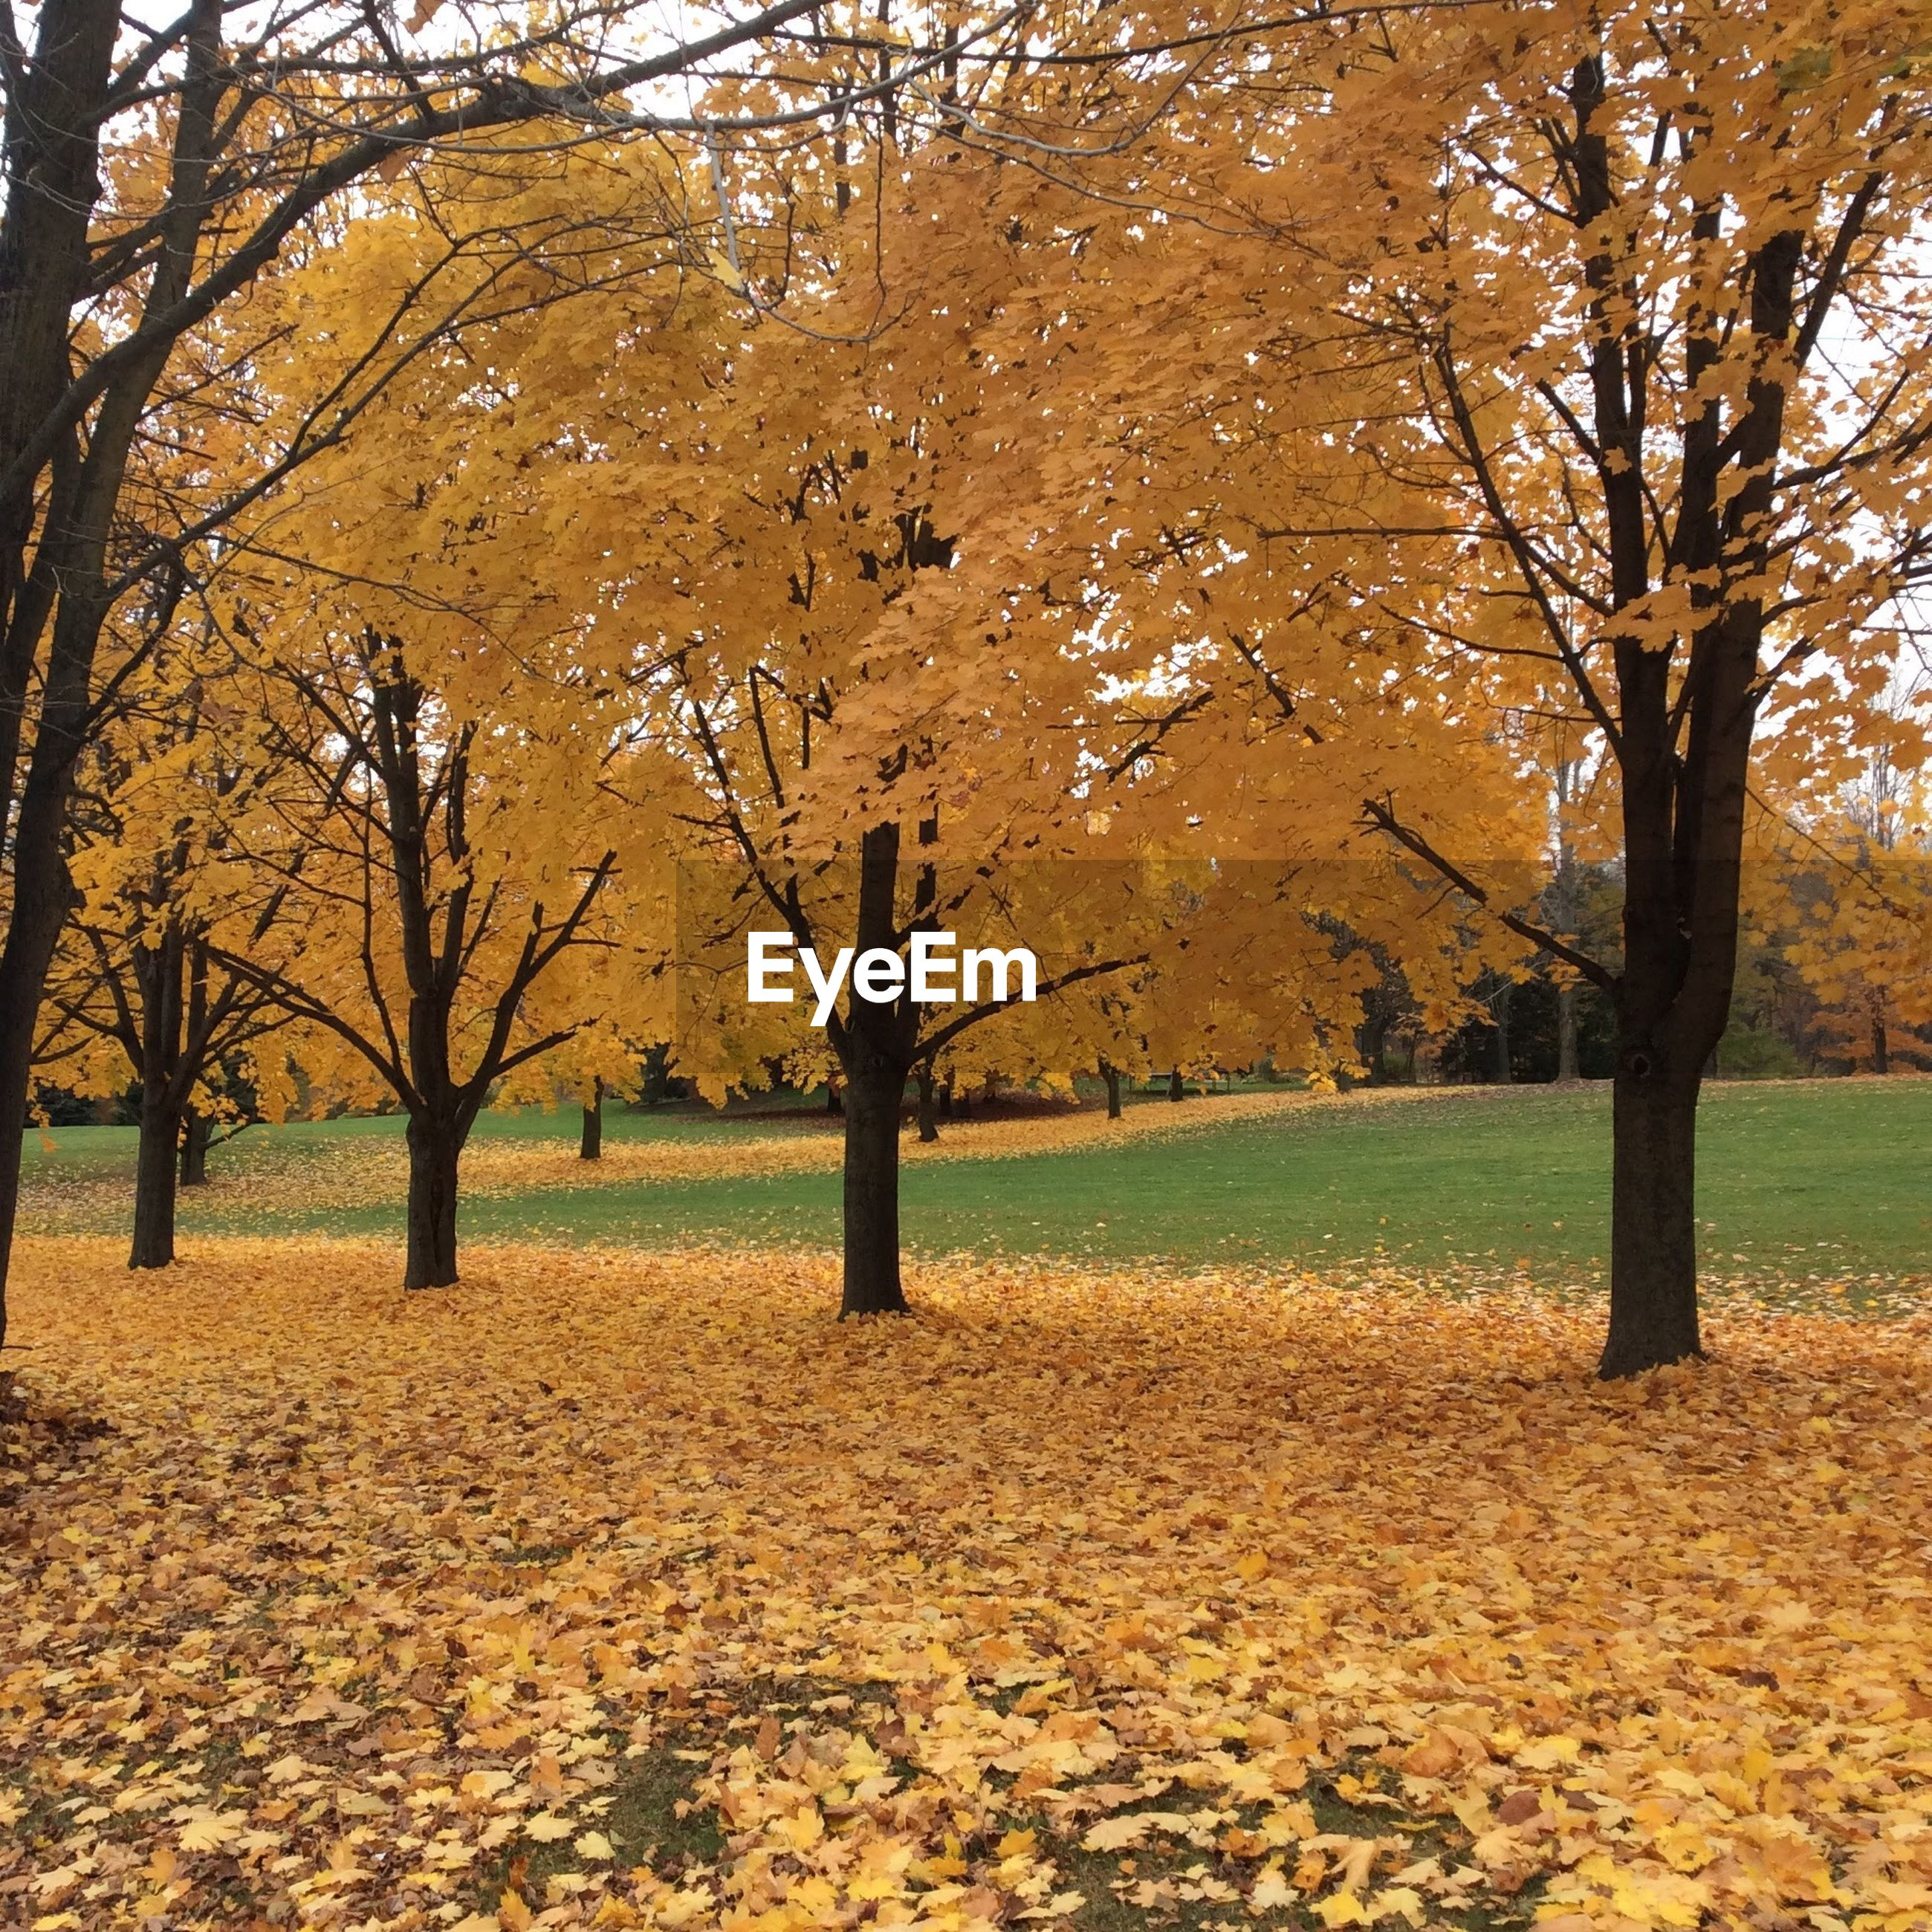 AUTUMN LEAVES ON A FIELD